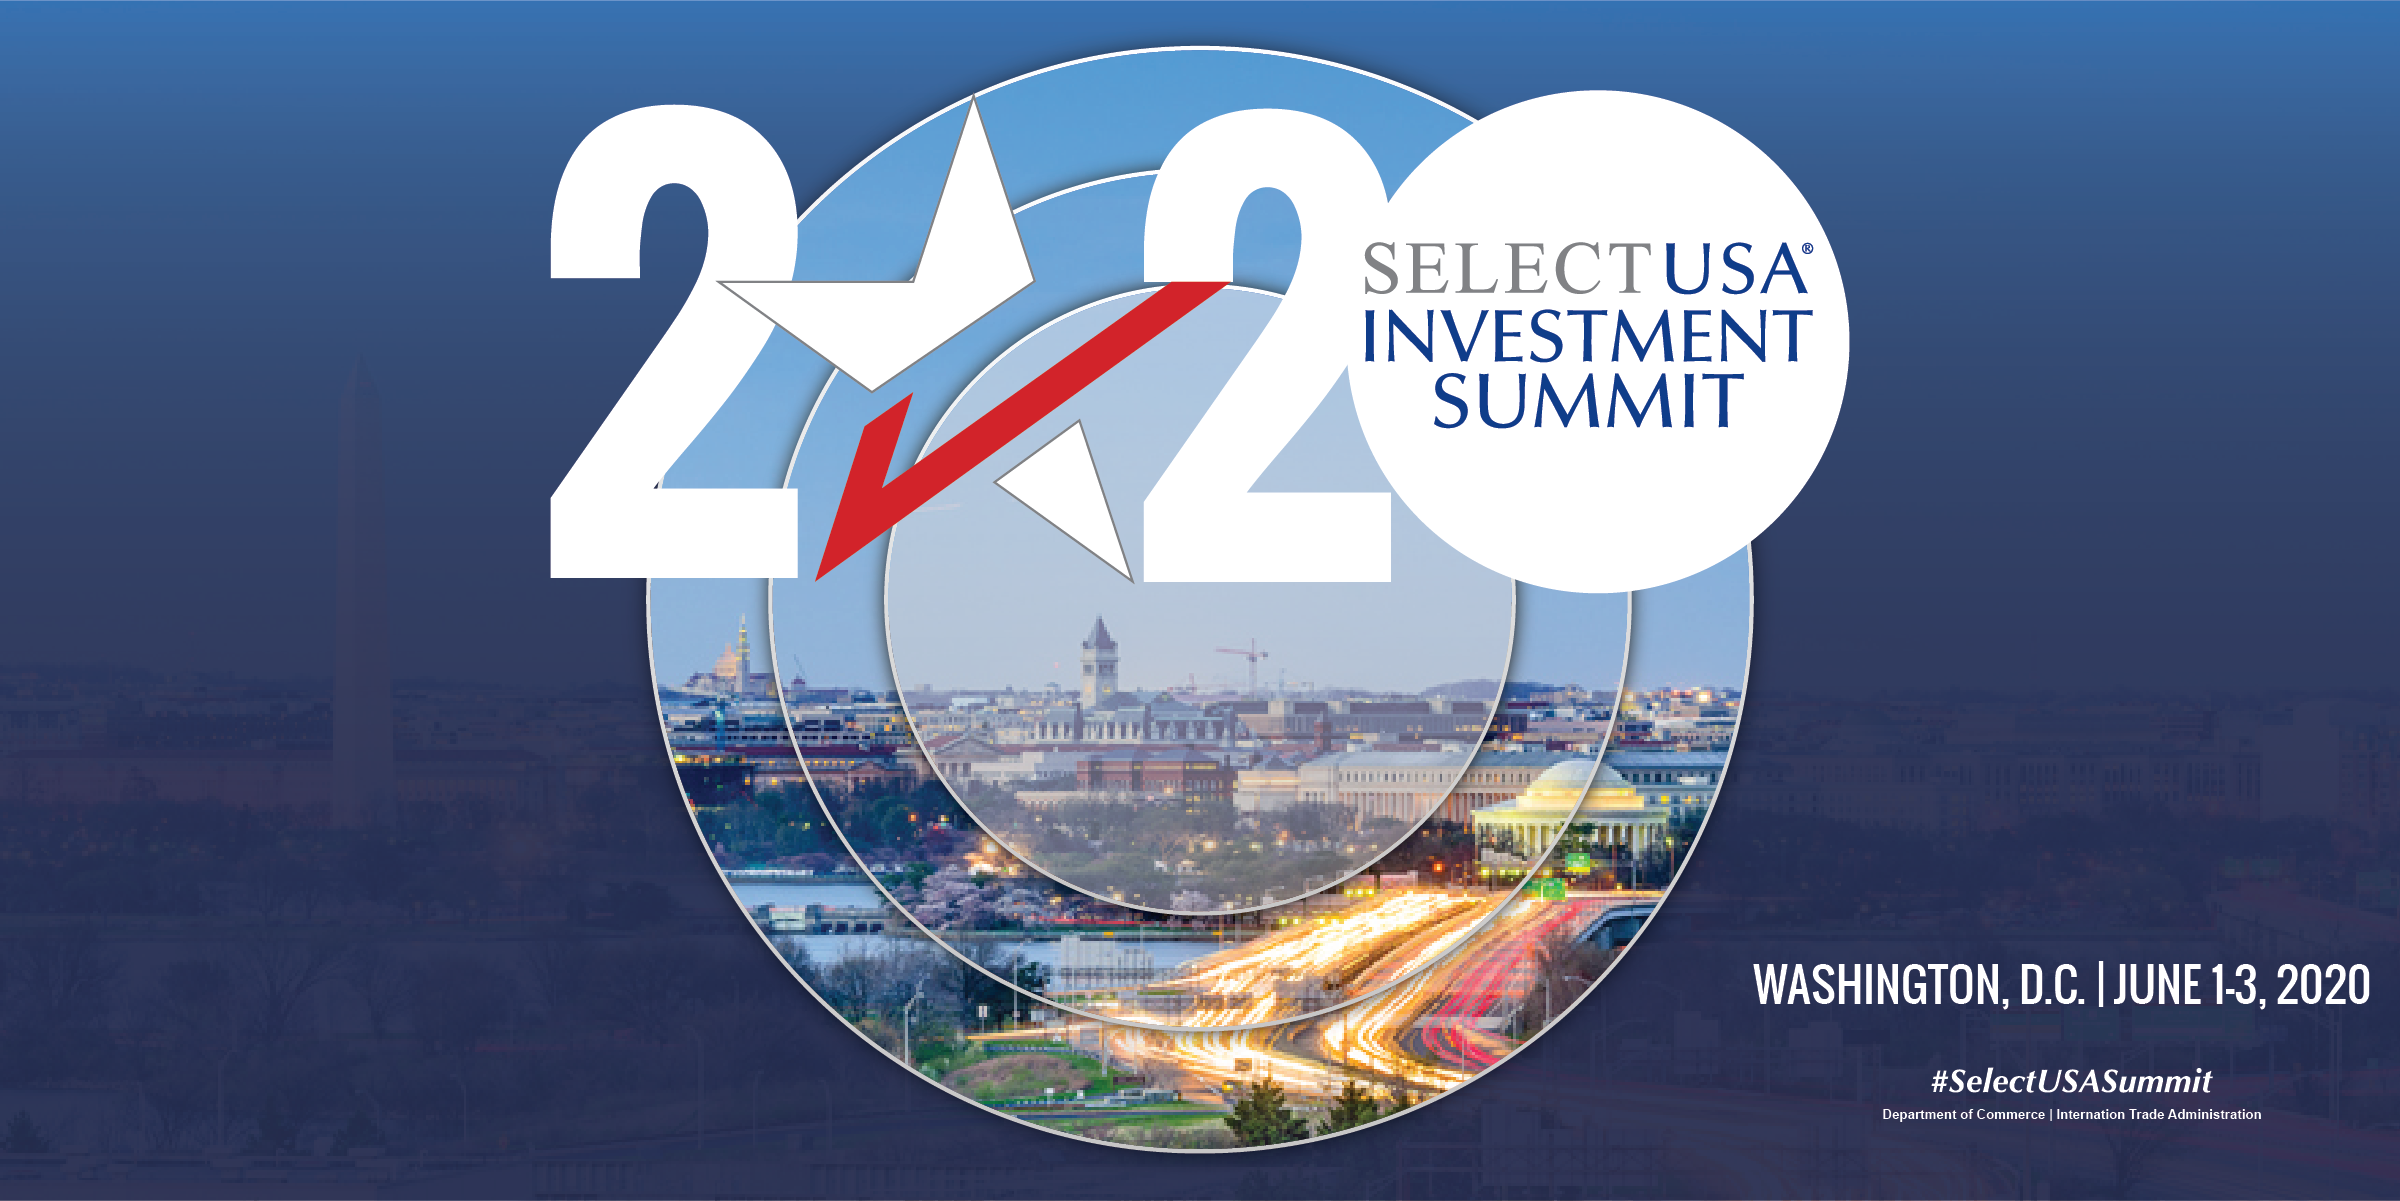 Select usa 2021 investment summit best forex indicator 2021 free download